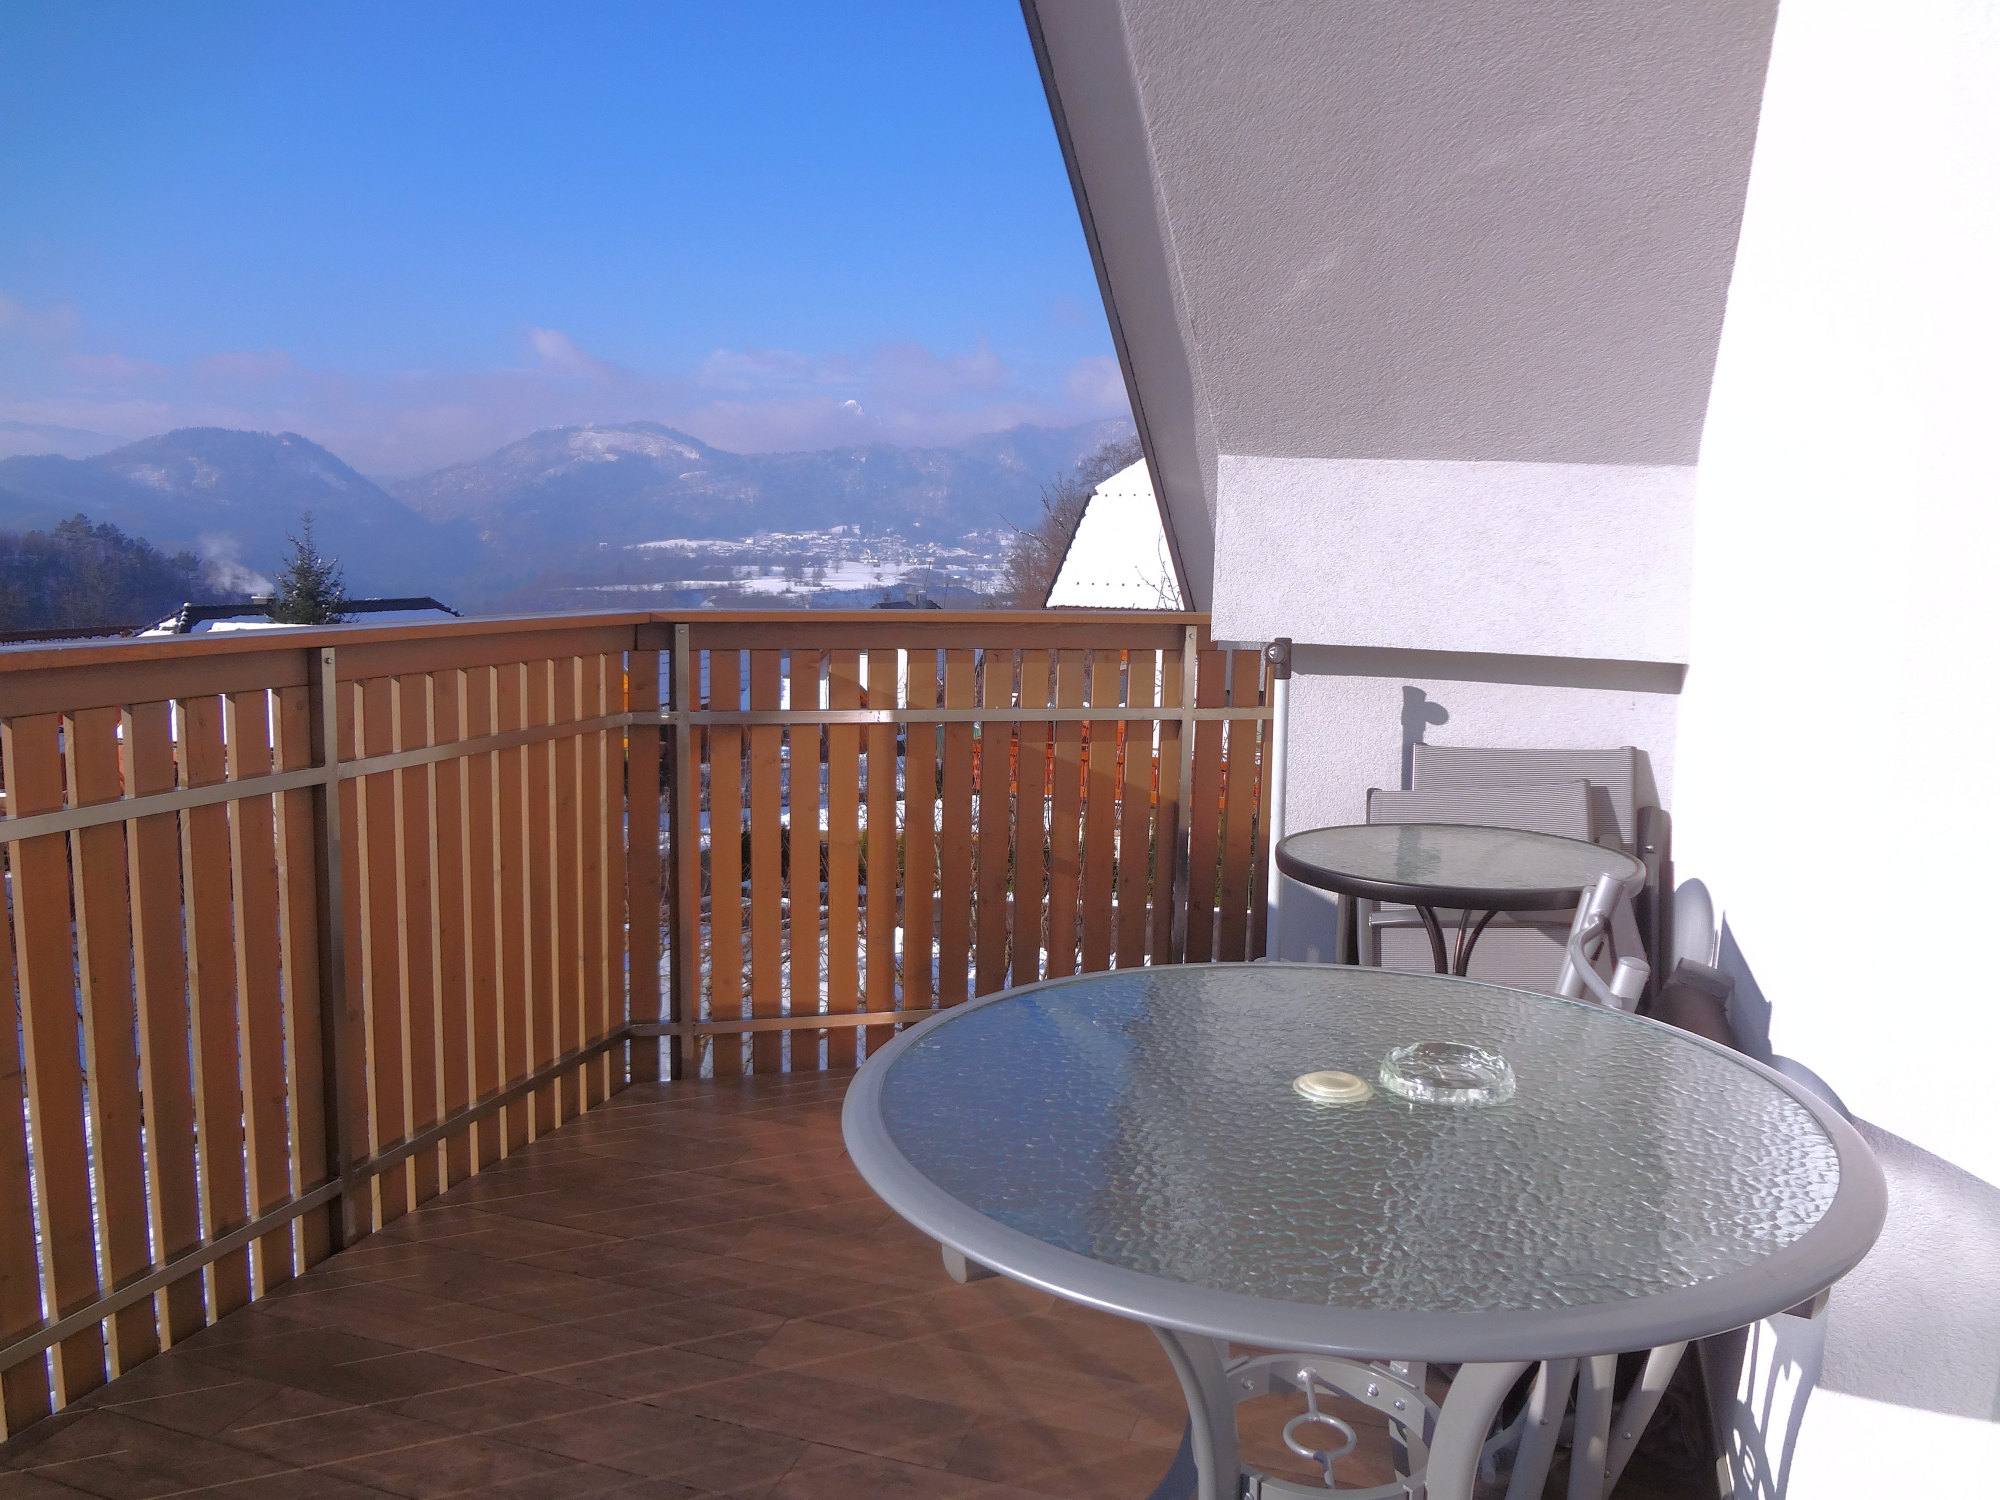 A wintry view of the Slovenian Alps from the balcony of Apartments Fine Stay Apartments in Slovenia